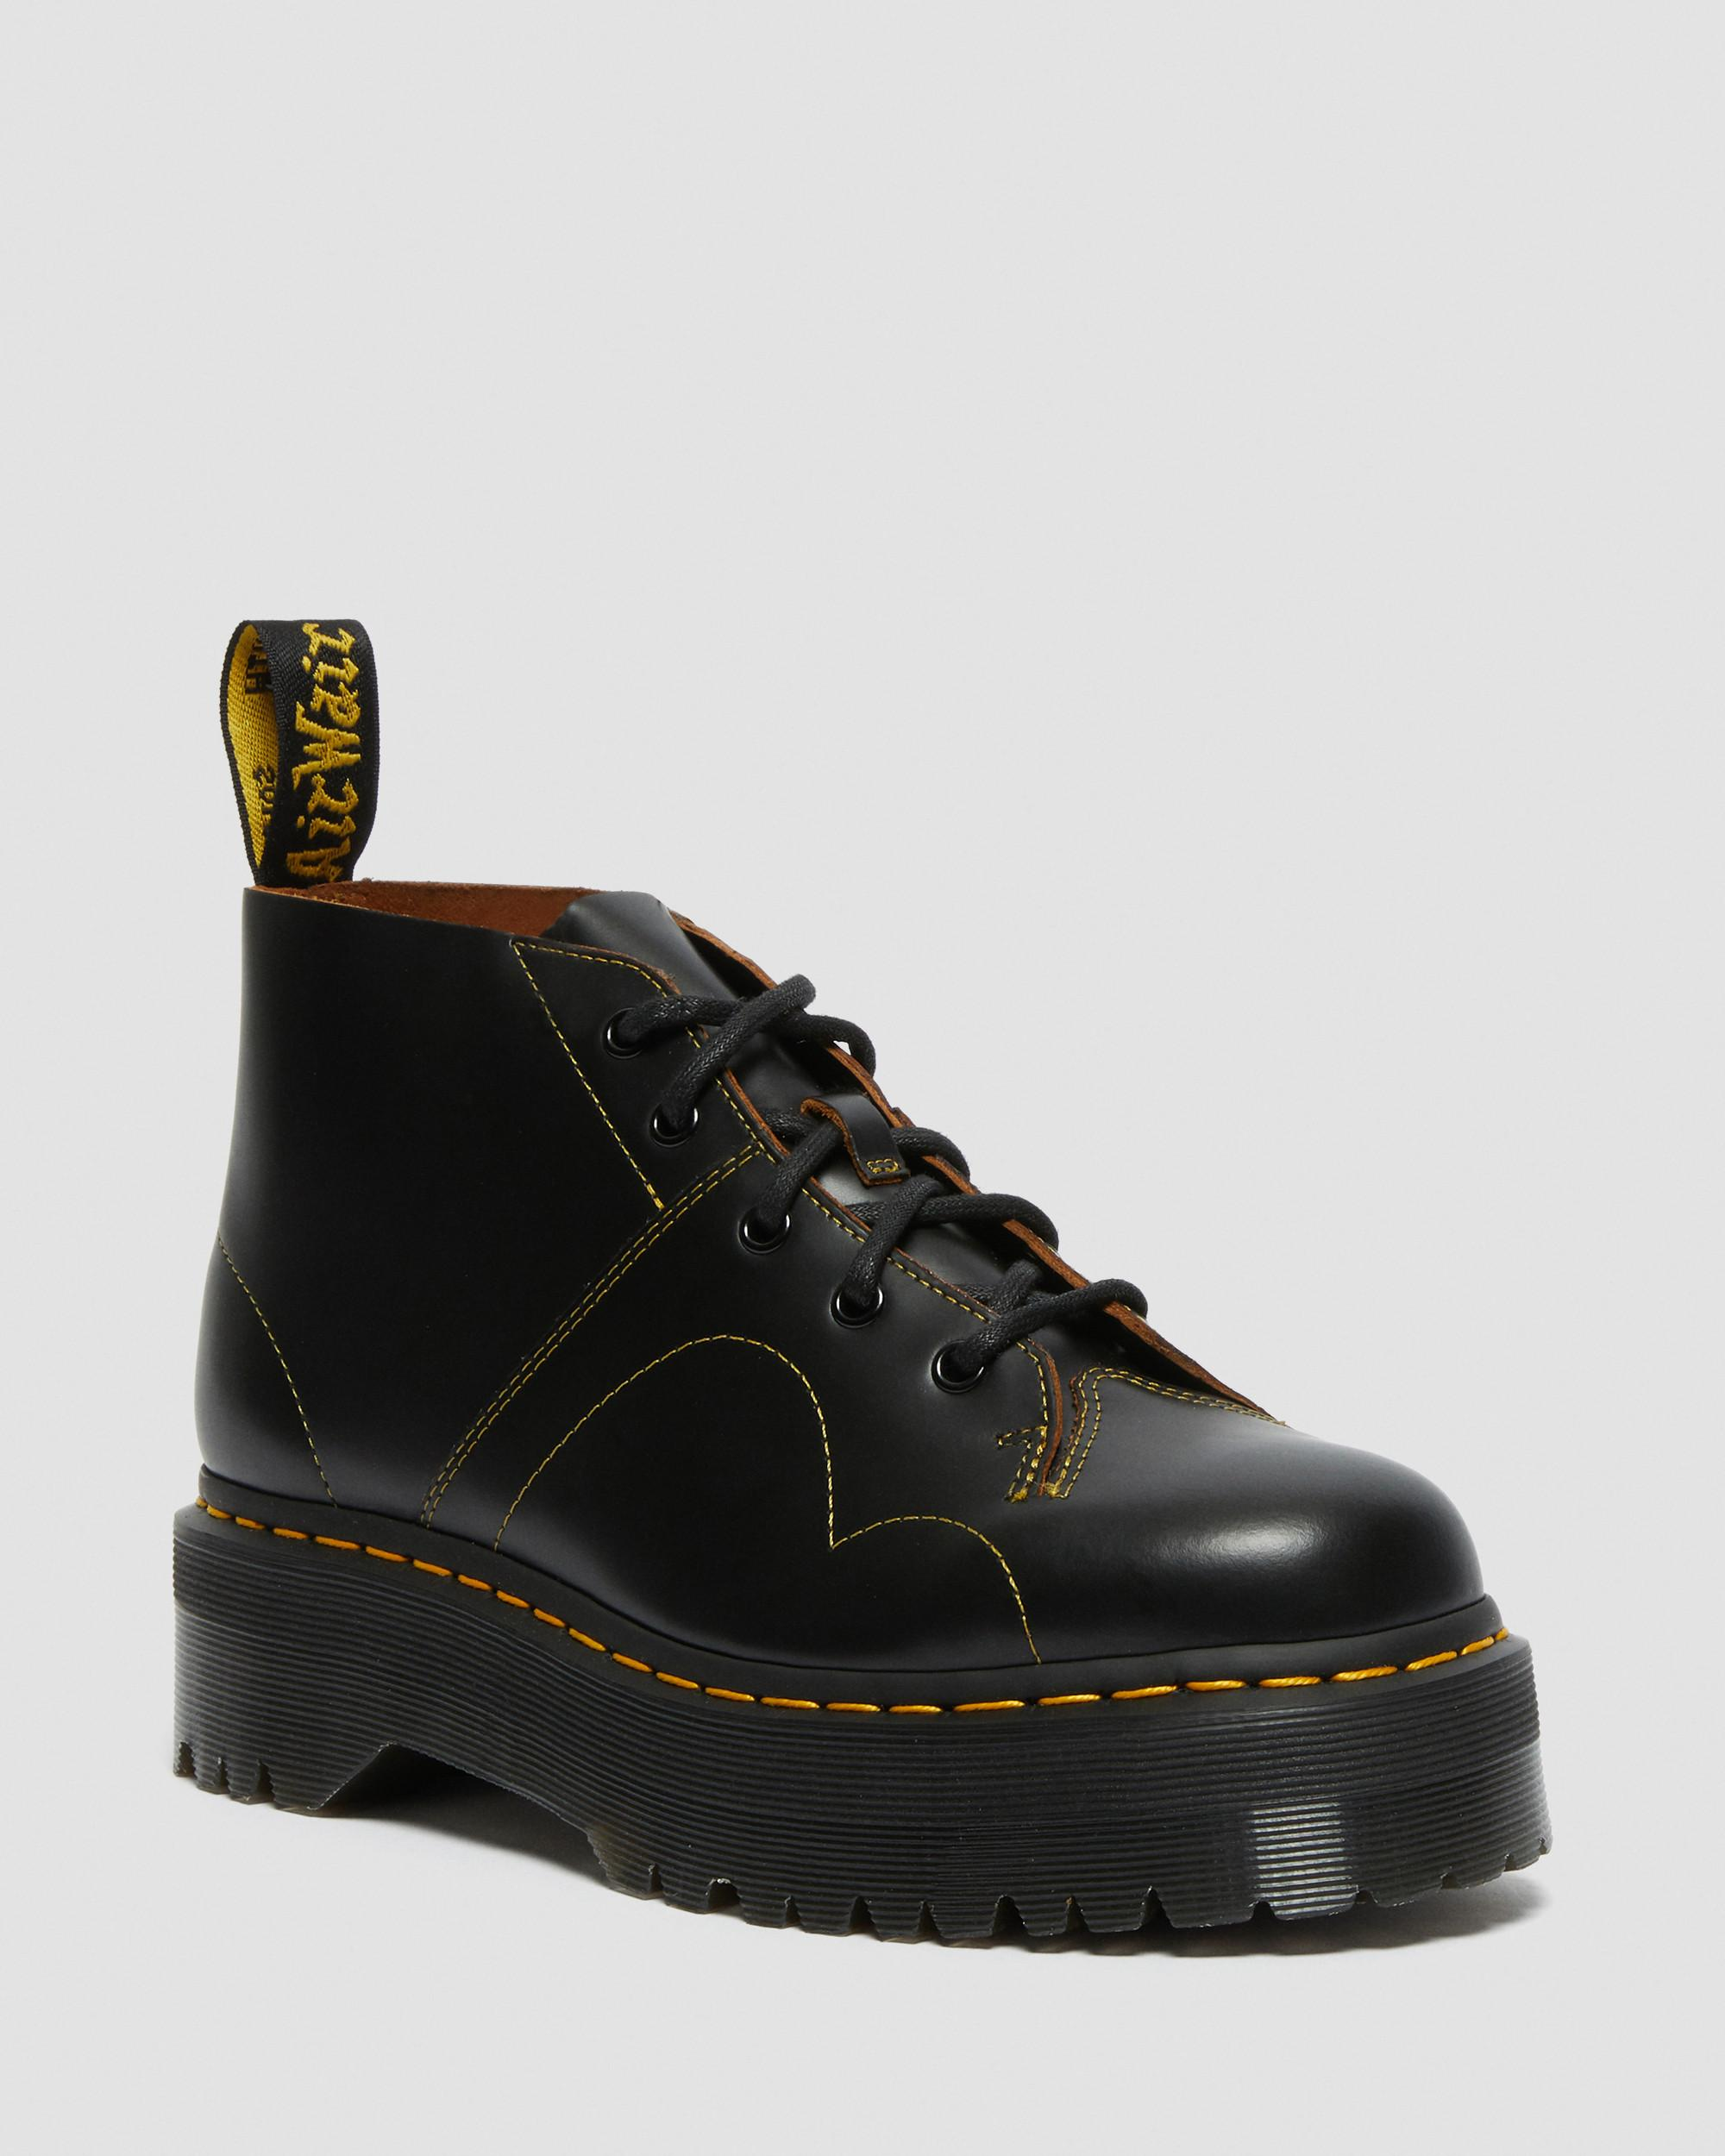 DR MARTENS CHURCH PLATFORM MONKEY BOOTS